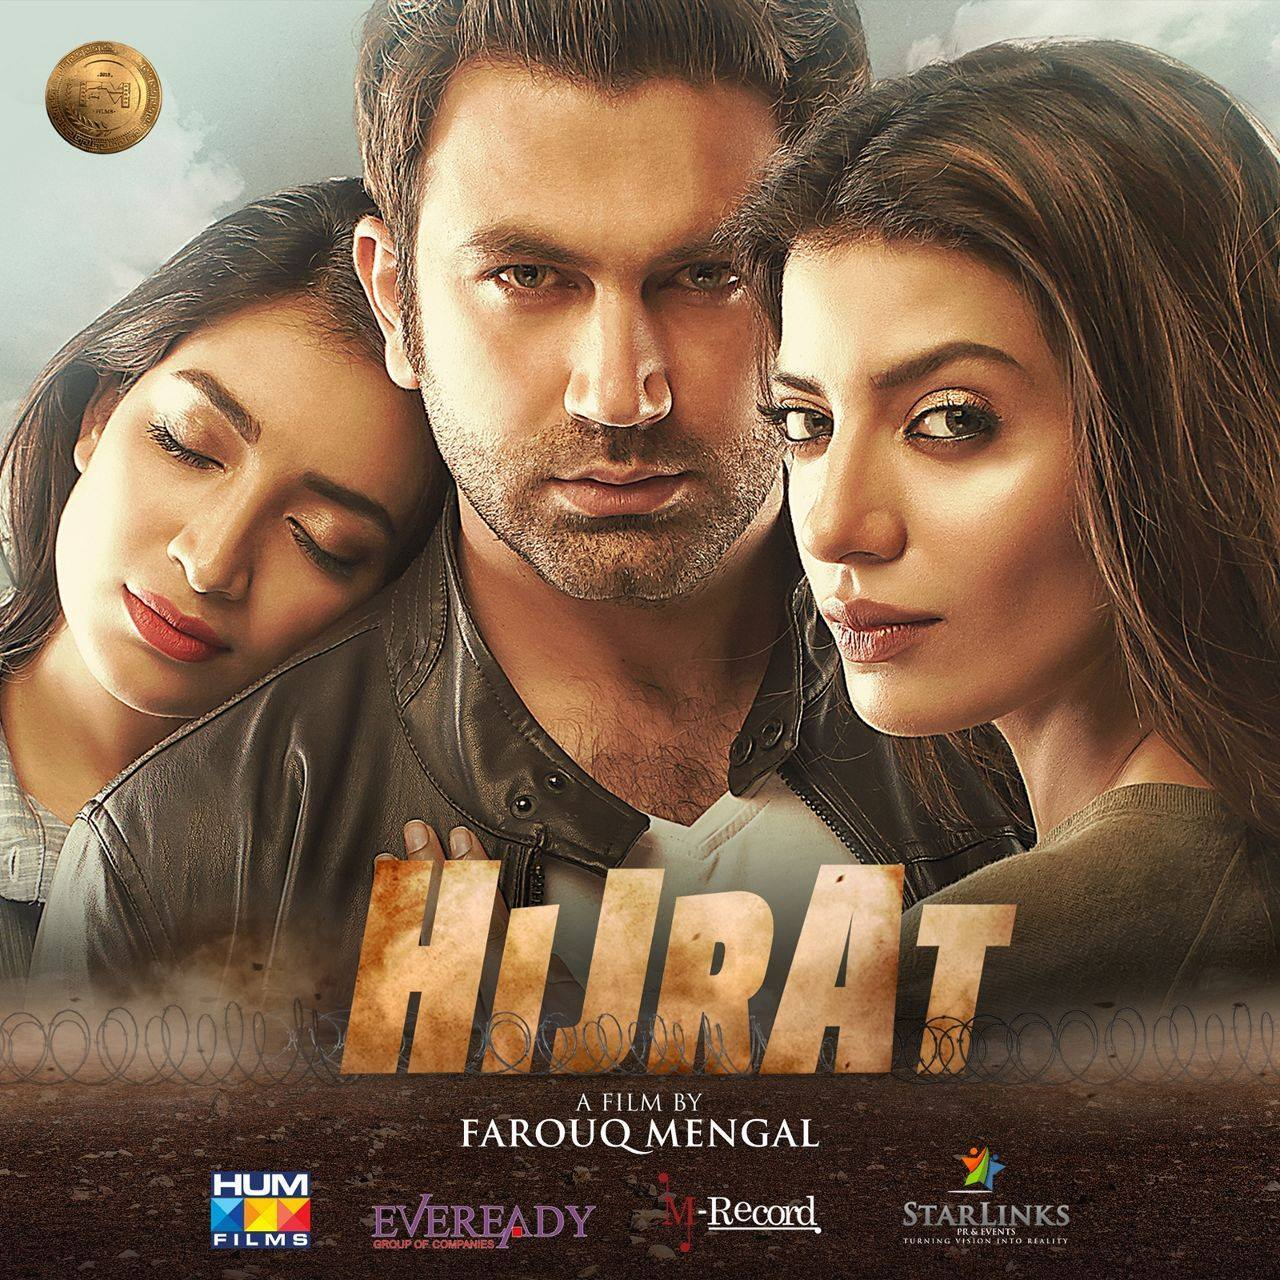 Hijrat 2016 Pakistani Full Movie Download Online Free